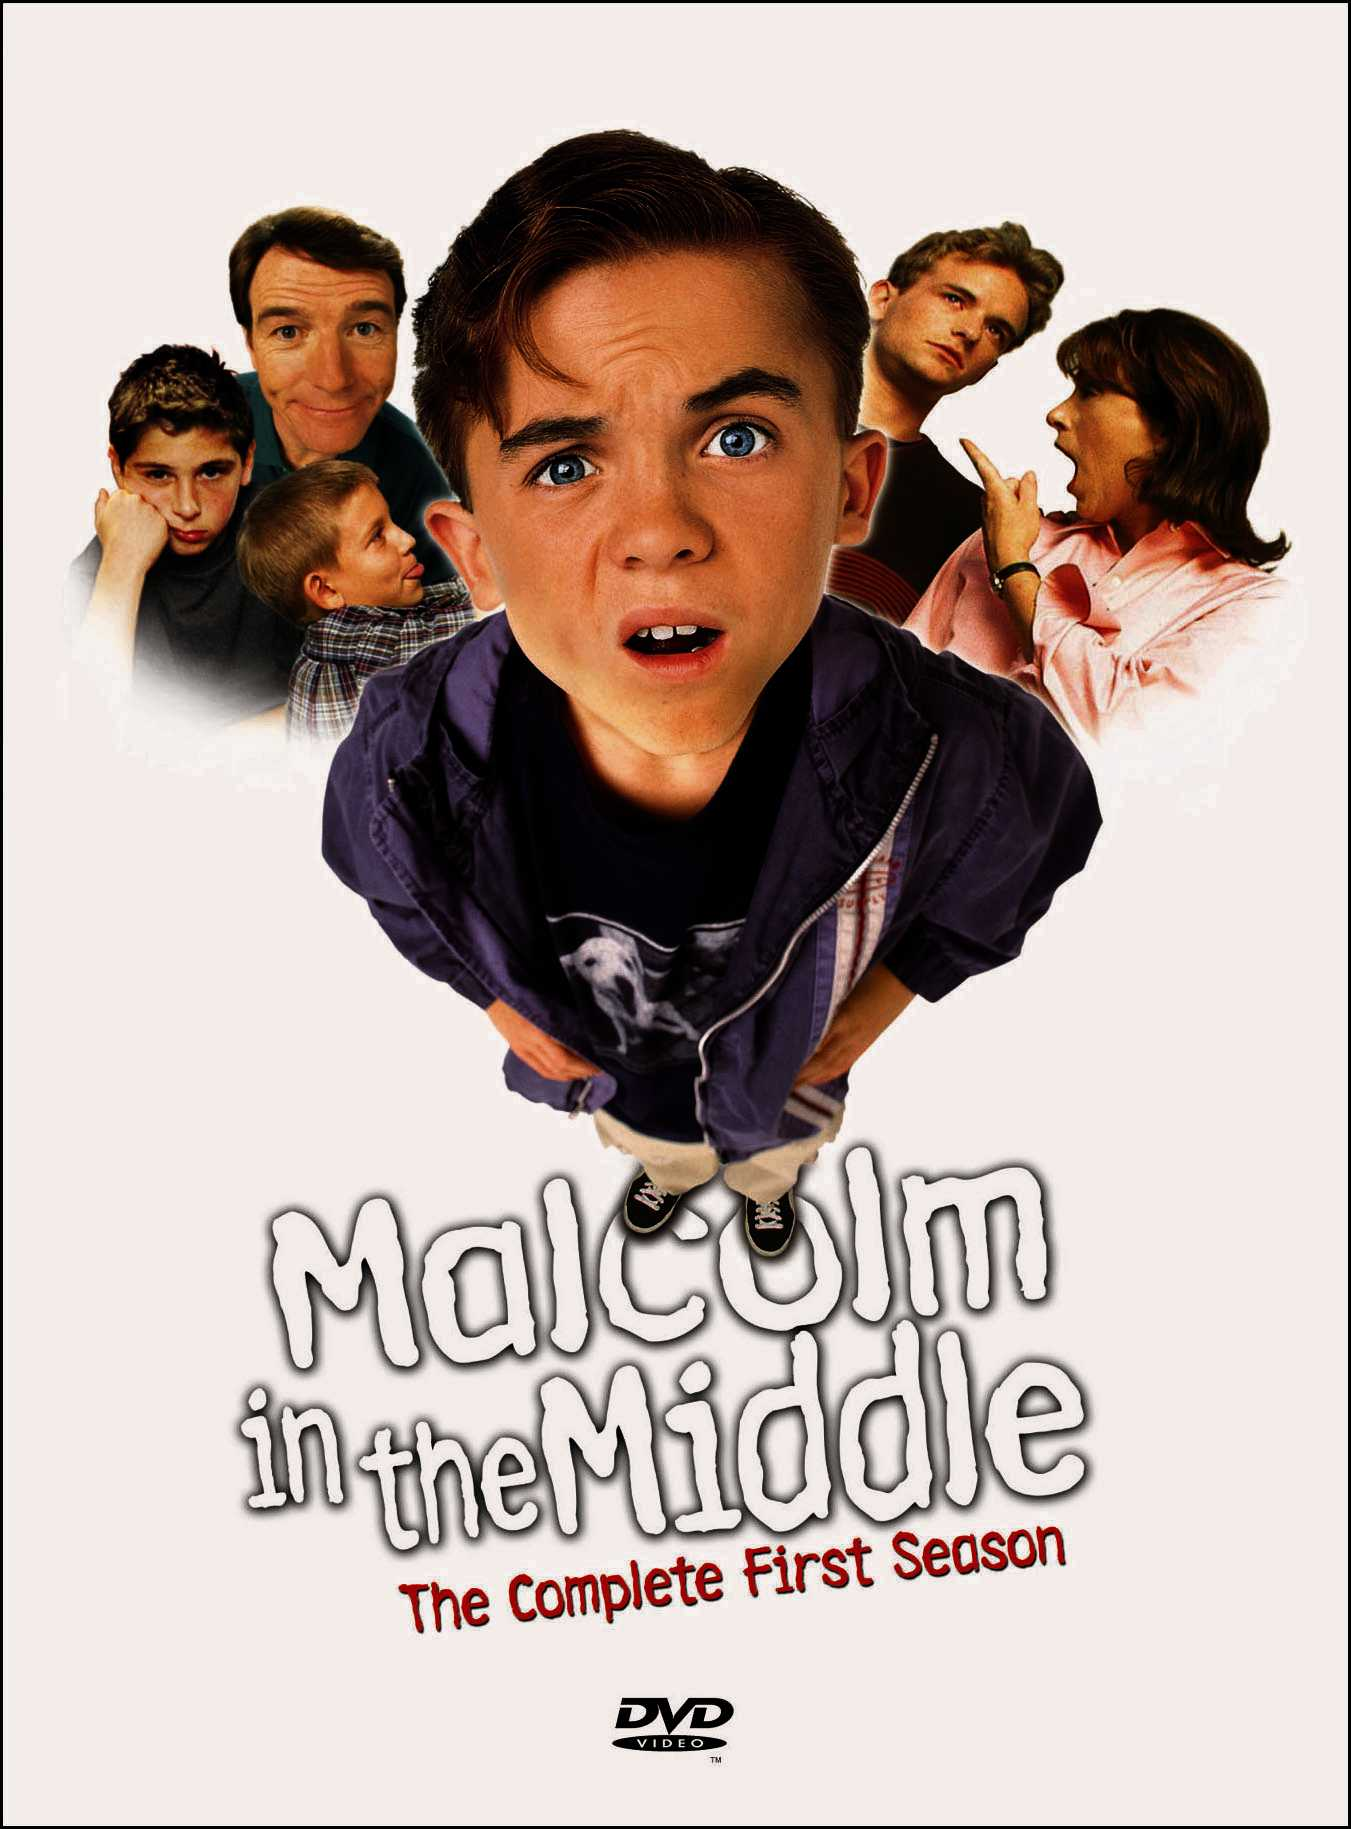 MALCOLM IN THE MIDDLE BY MALCOLM IN THE MIDDL (DVD)